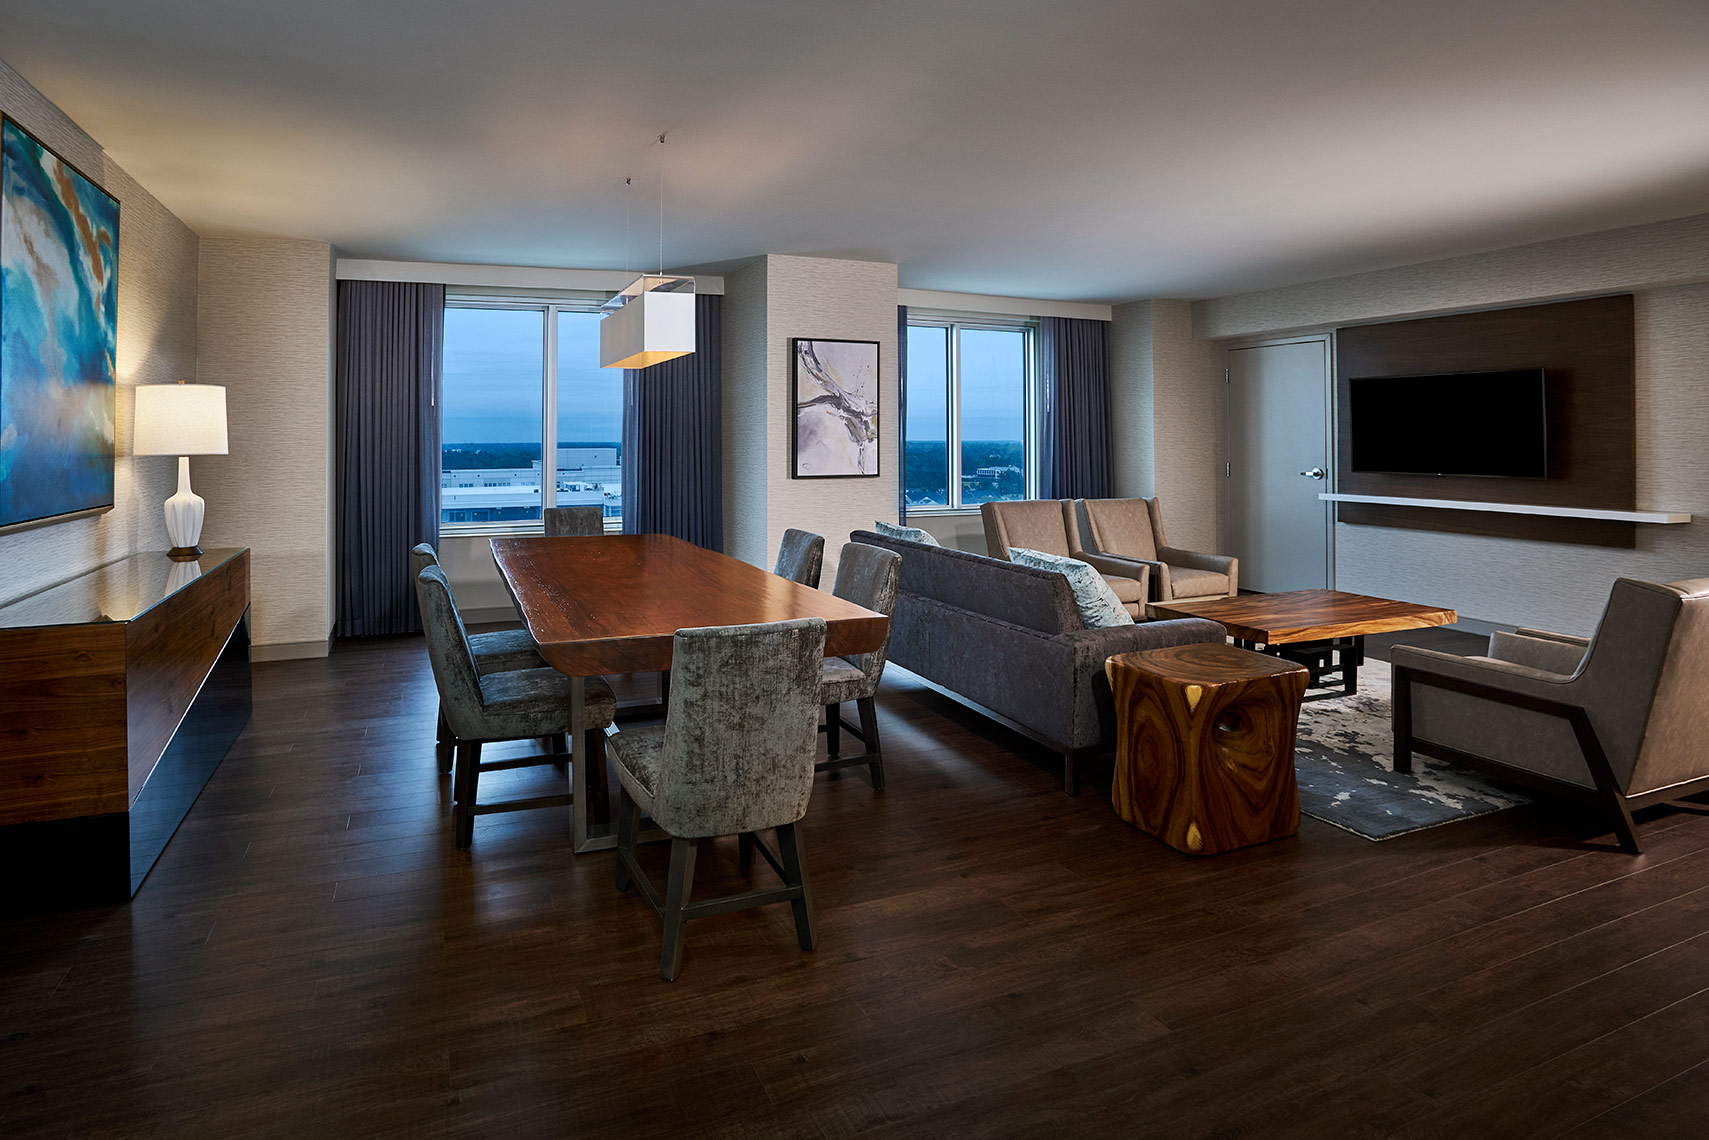 HOTELS-Premium35-WESTIN-Virginia-Beach10